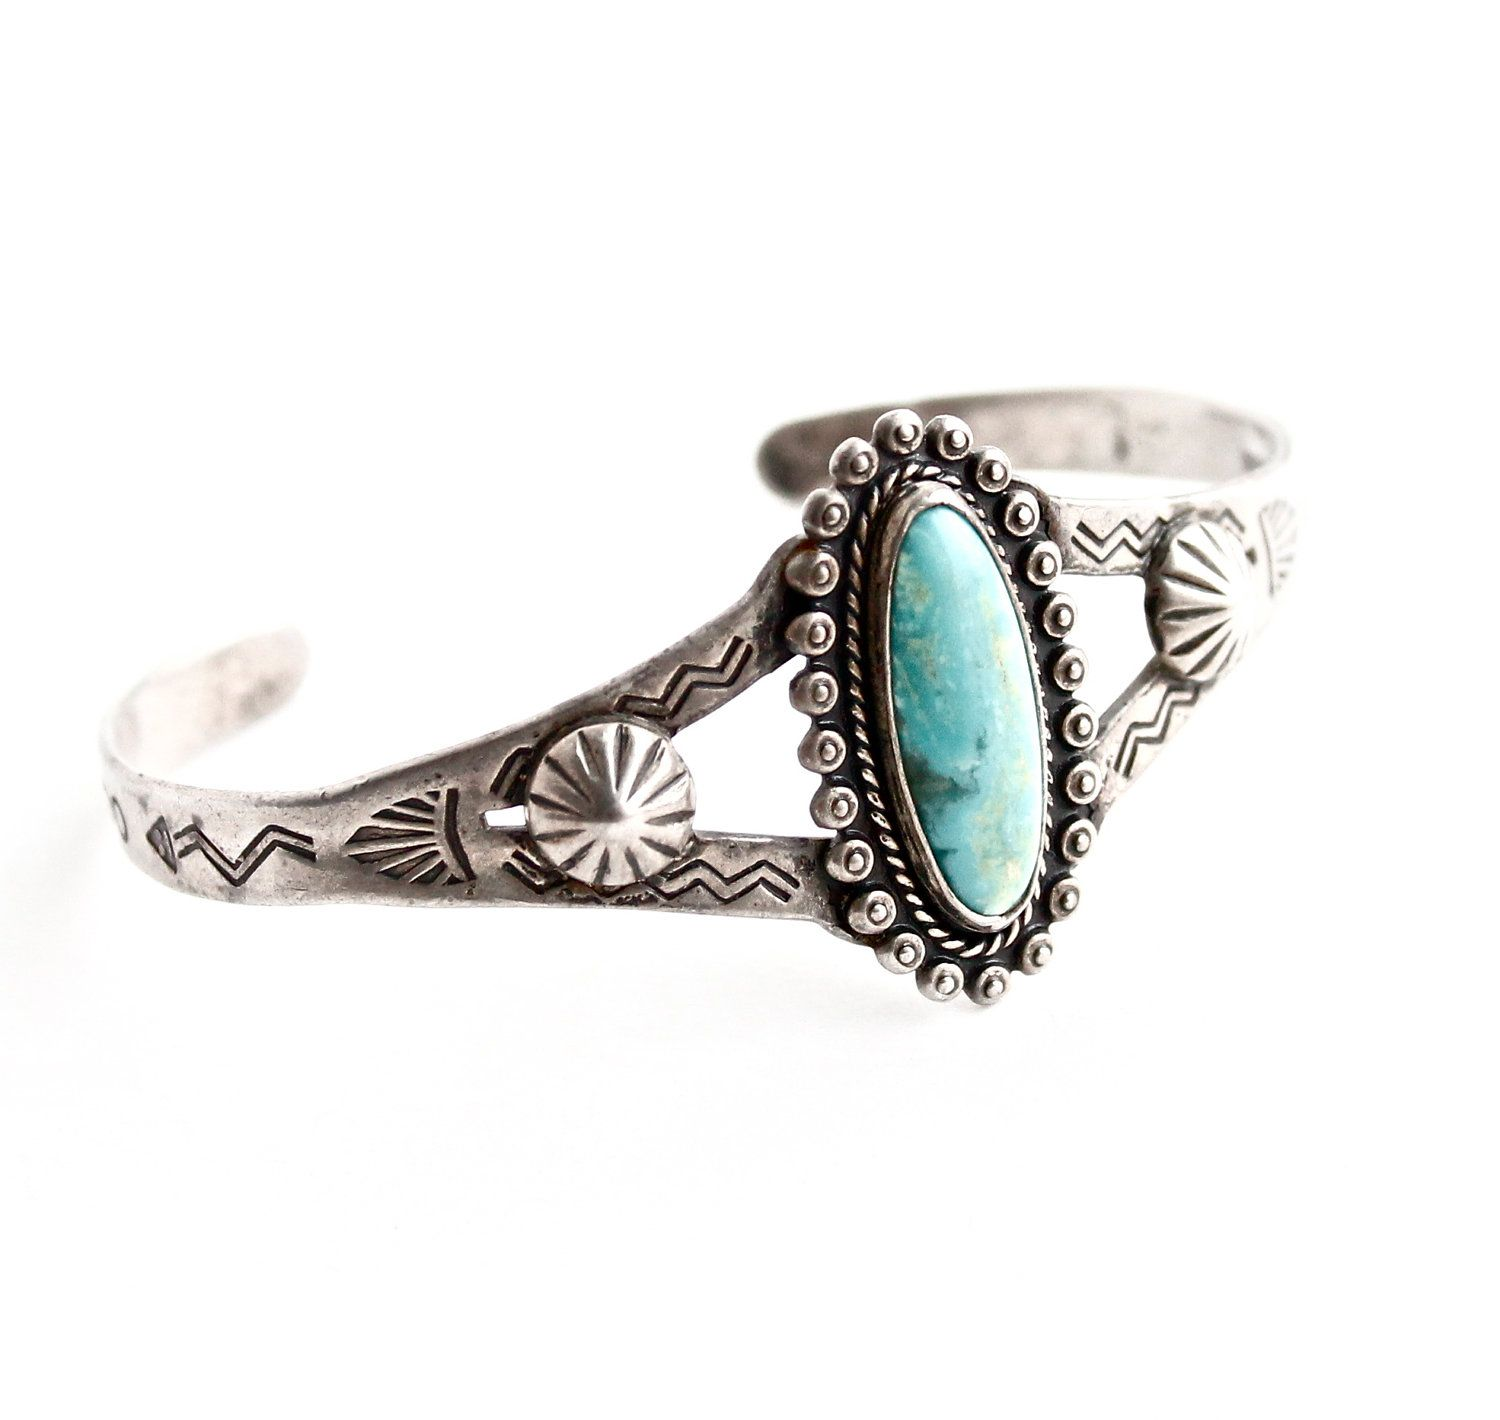 Small turquoise cuff